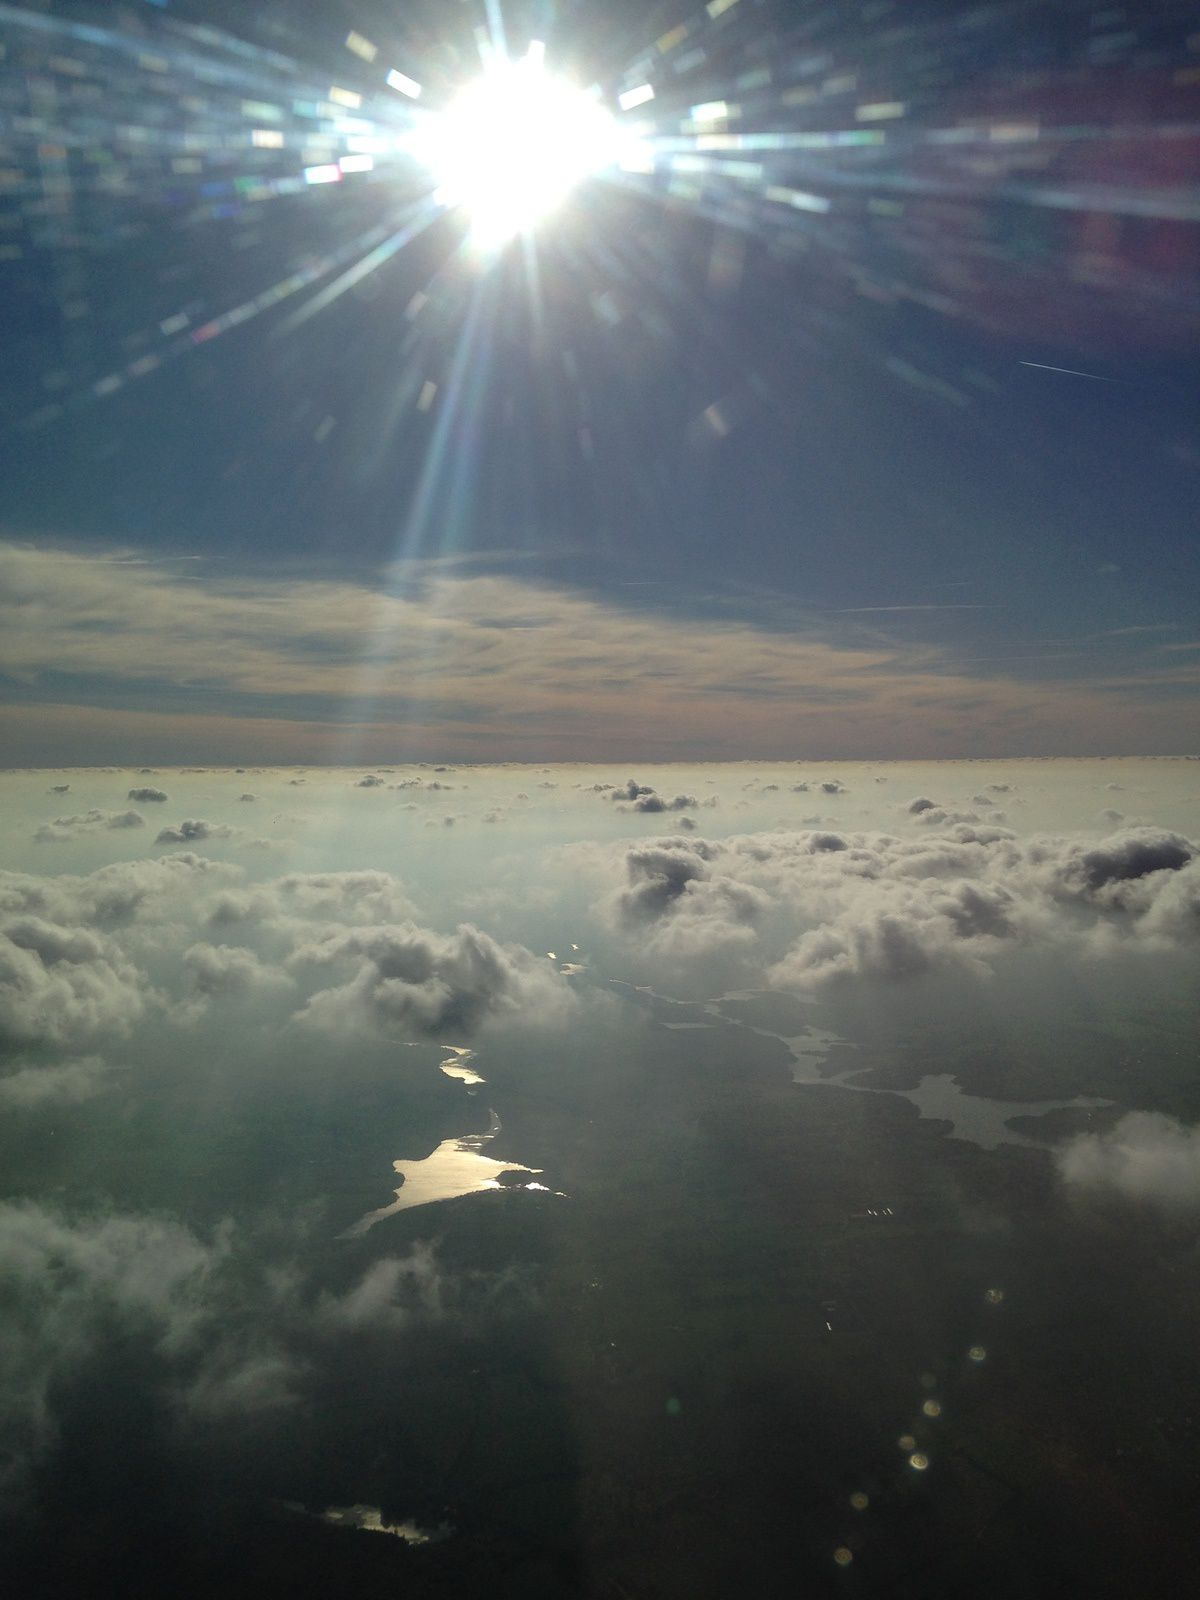 #nuage #avion #vol #charlotteblabla blog